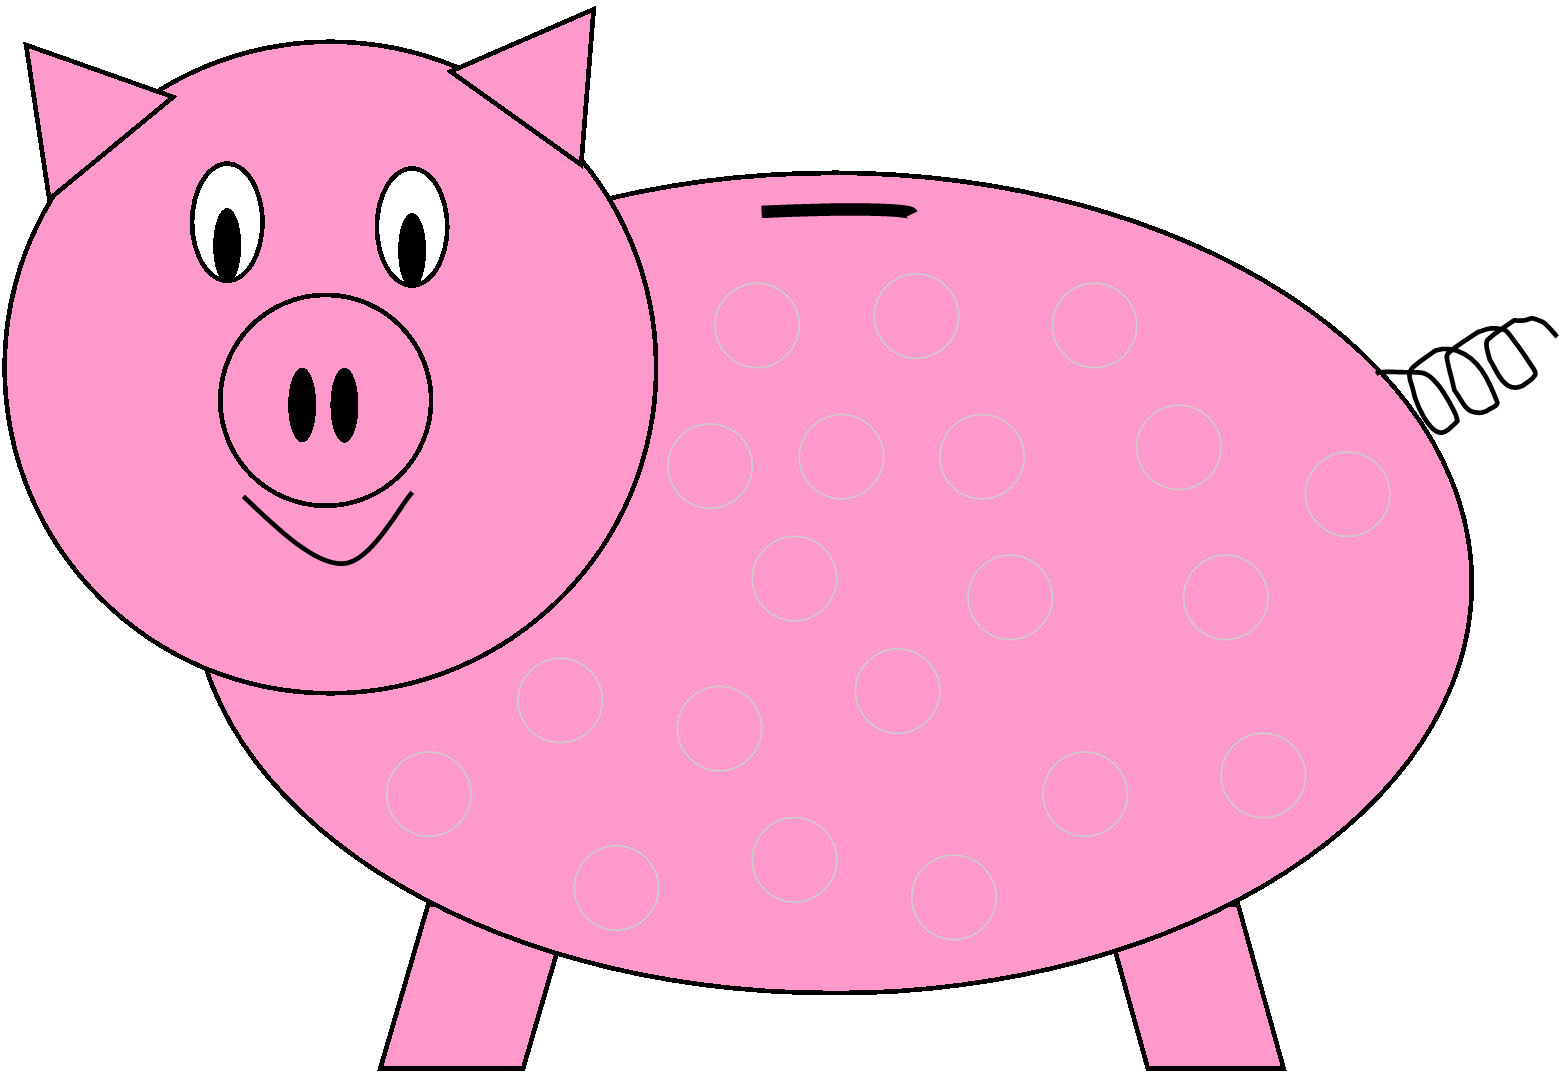 Piggy Bank Bank 3 Clipart-Piggy bank bank 3 clipart-8